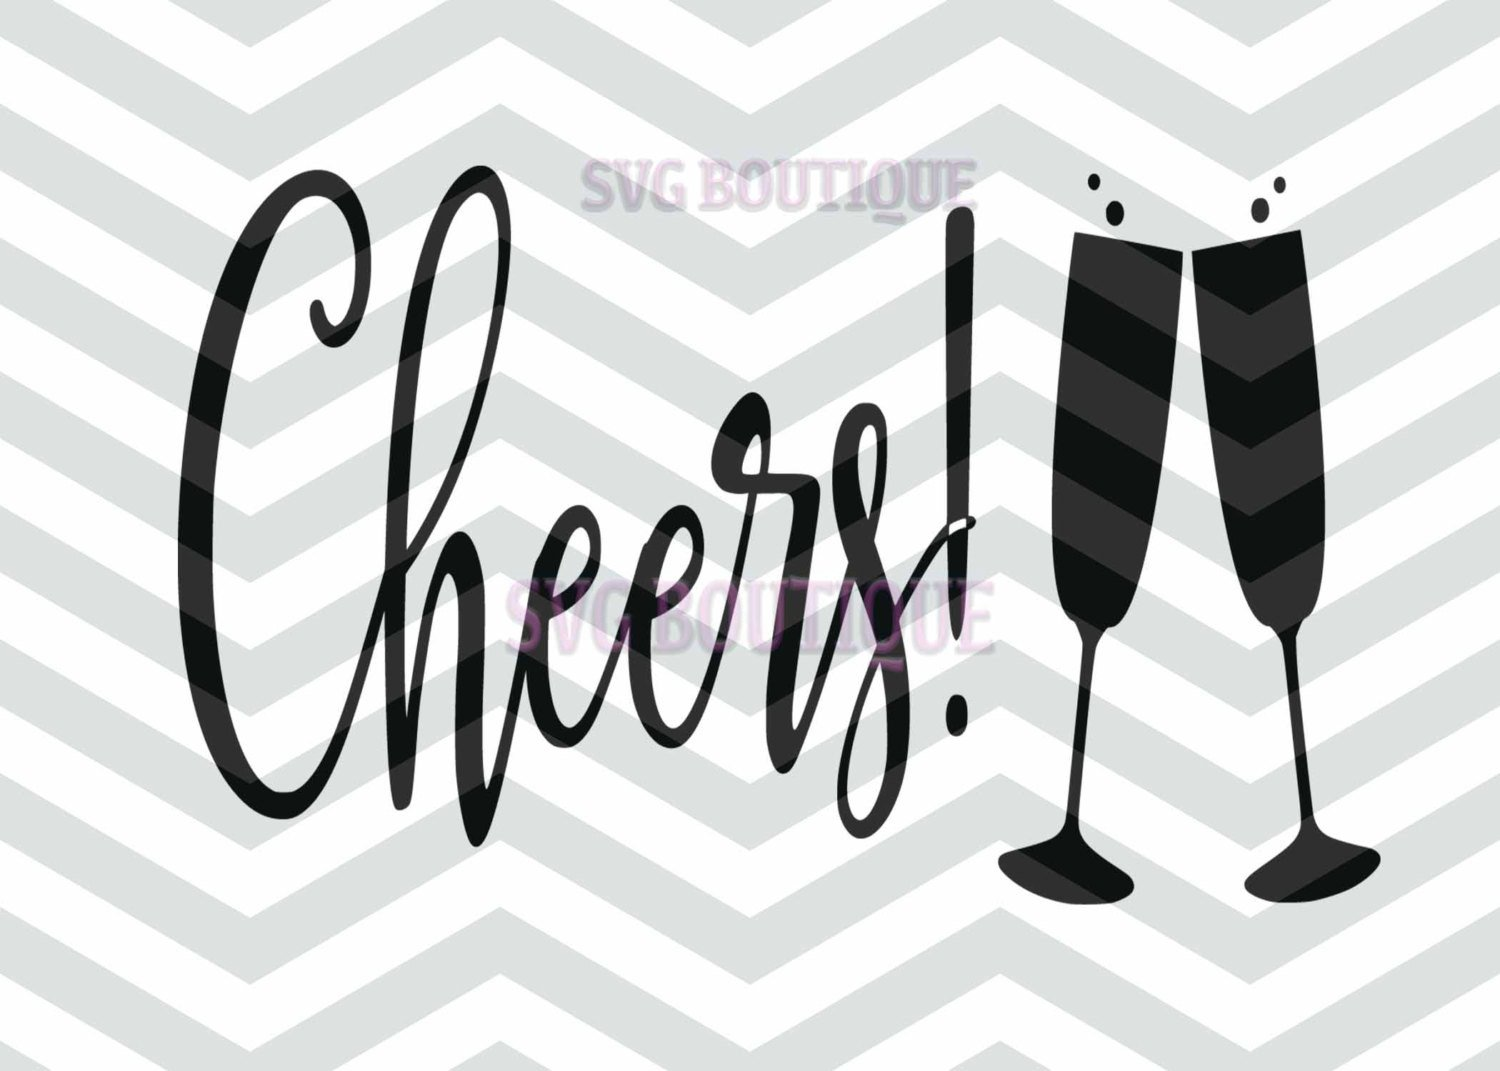 Champagne clipart champagne word. Cheers svg party wine